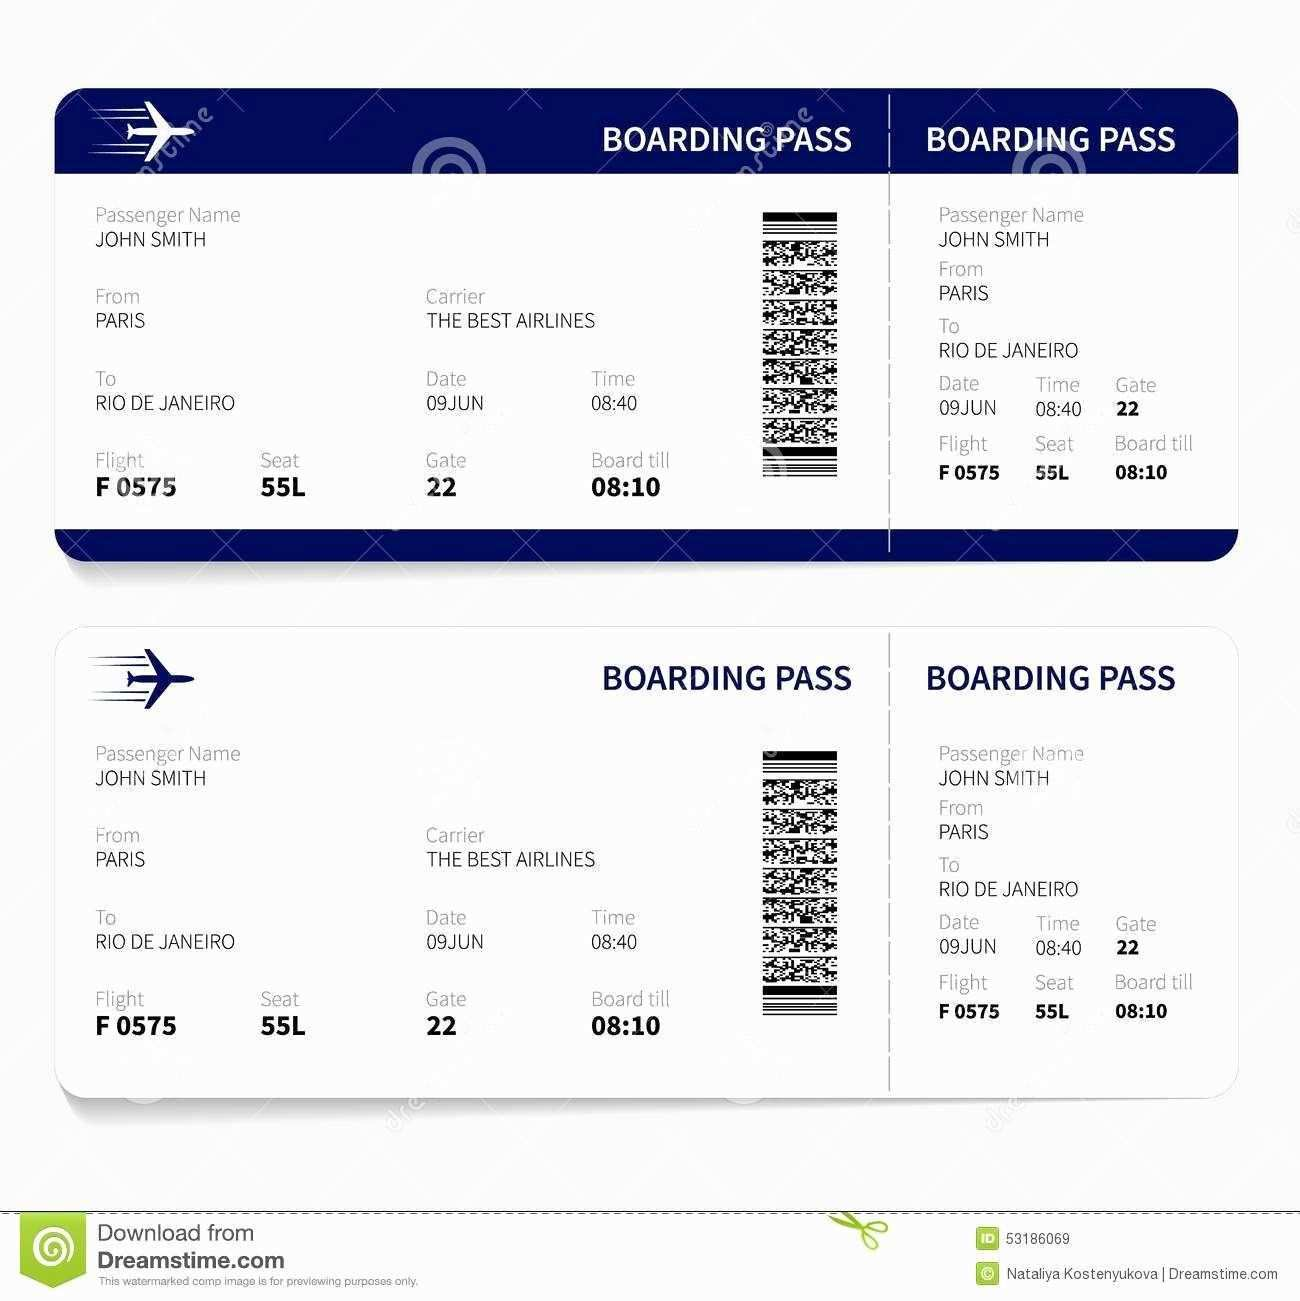 Plane Ticket Template Pdf Beautiful Airline Ticket Template Free Sample Customer Service Boarding Pass Template Fake Plane Ticket Ticket Template